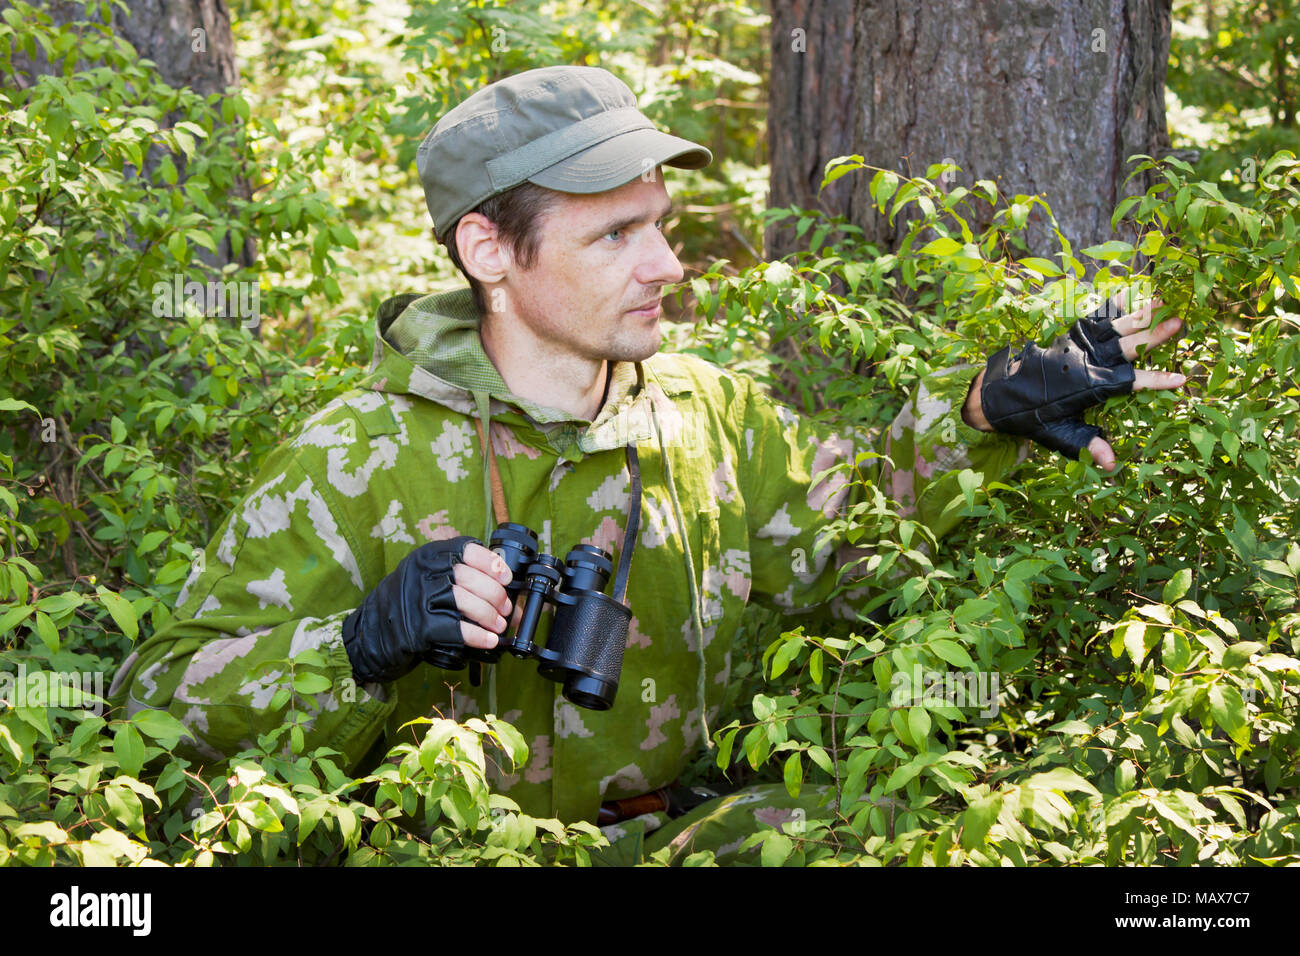 Conducted covert surveillance in the forest reserve - Stock Image